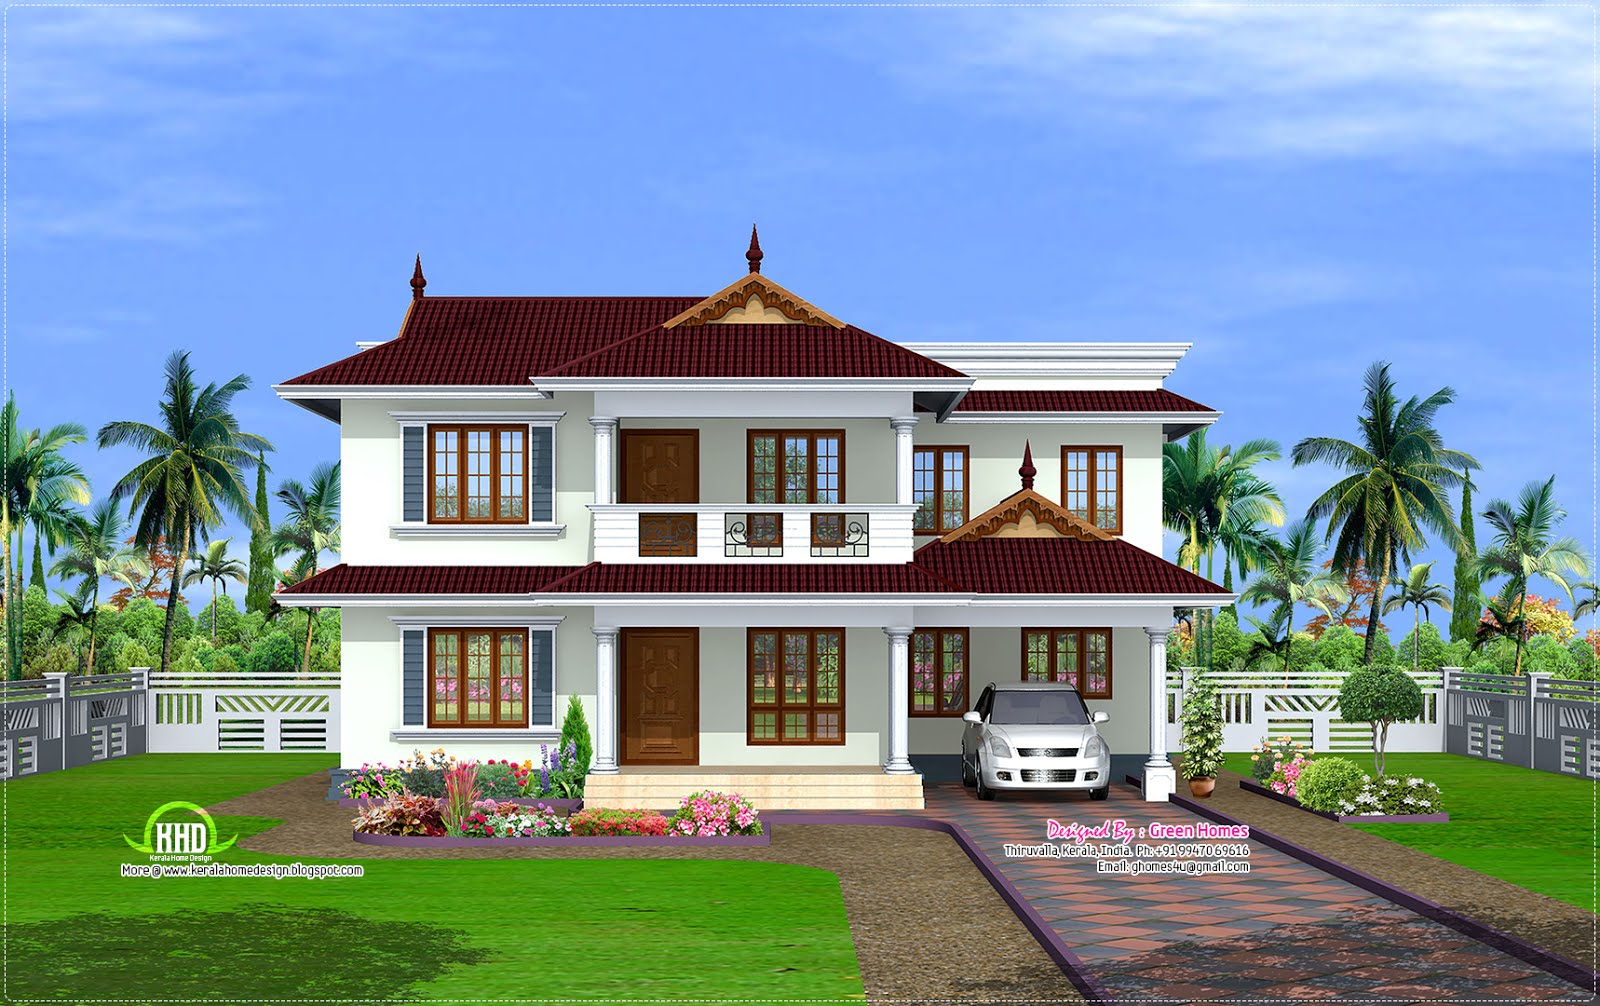 2600 kerala model house house design plans for Kerala house models photos